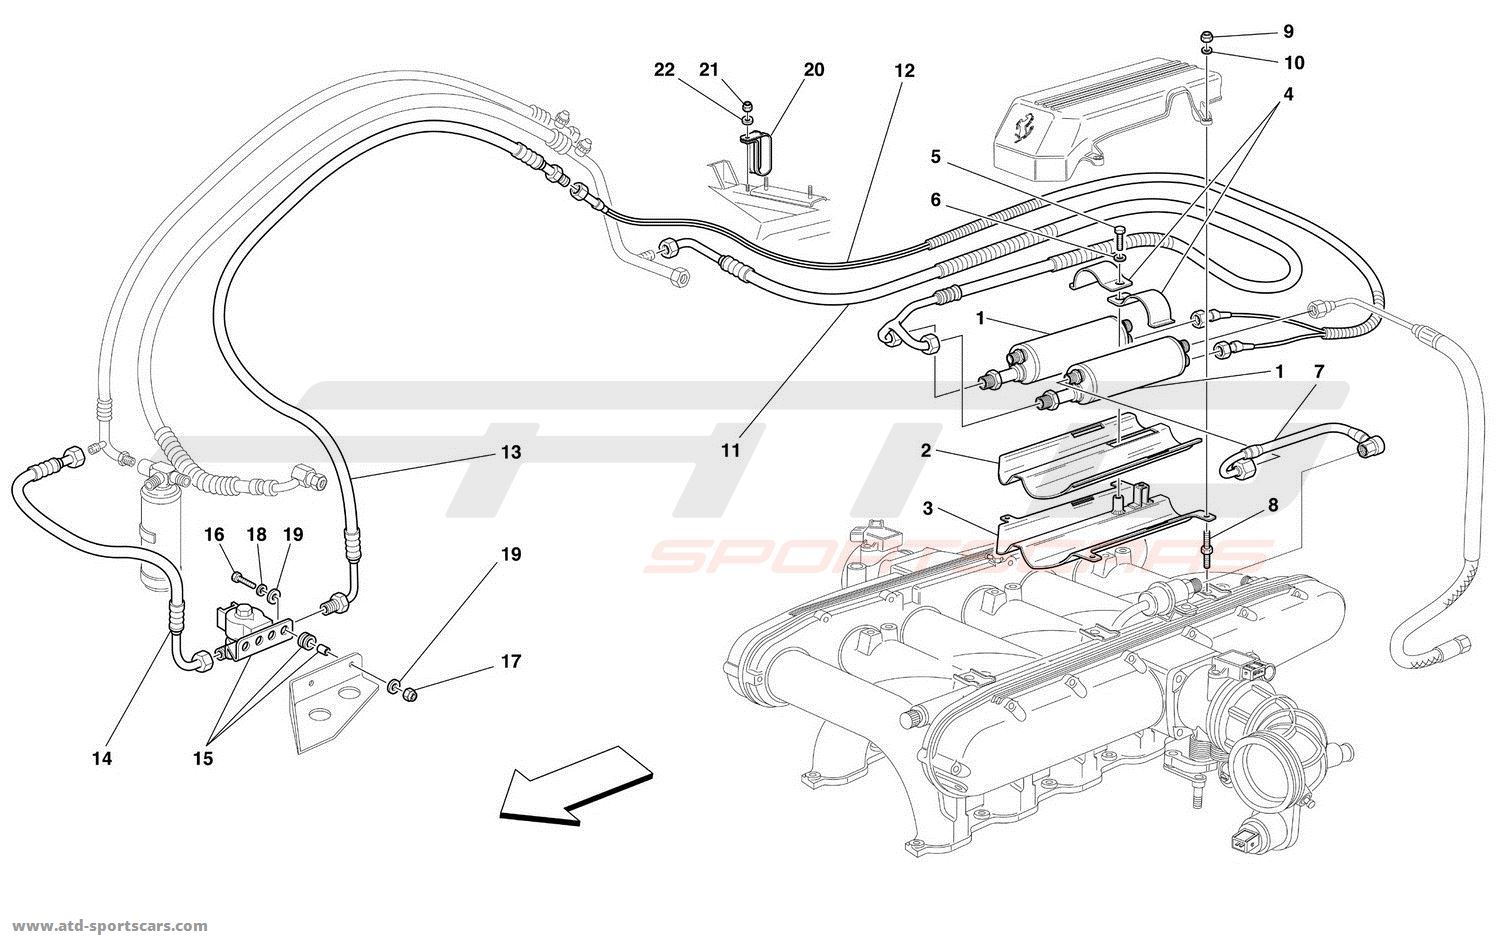 FUEL COOLING SYSTEM